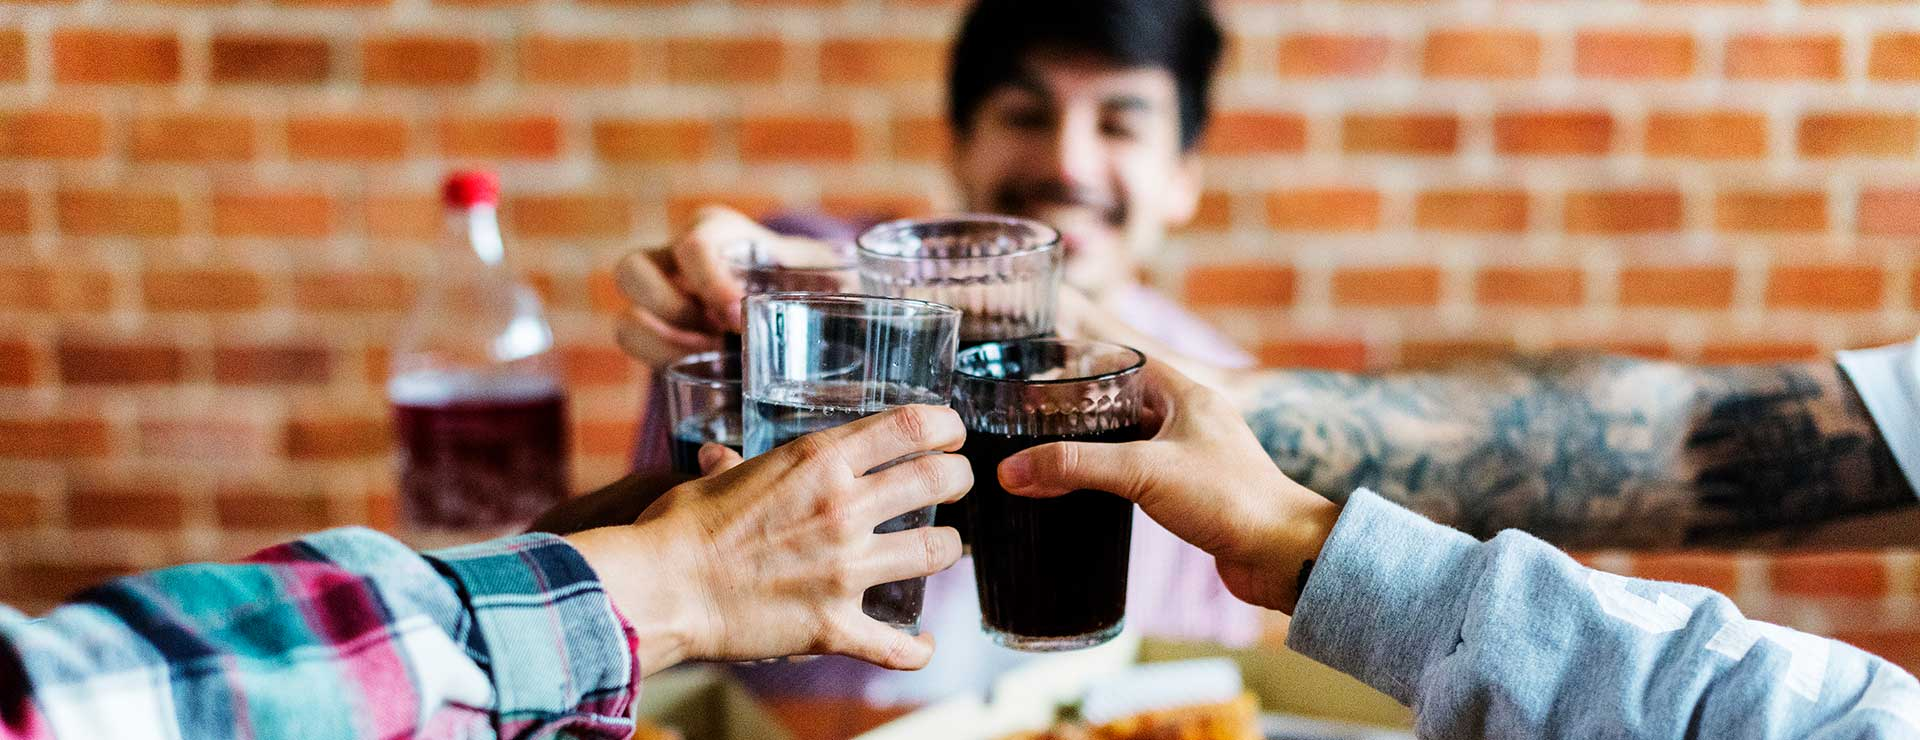 A group of friends clink their glasses of soda together over pizza.